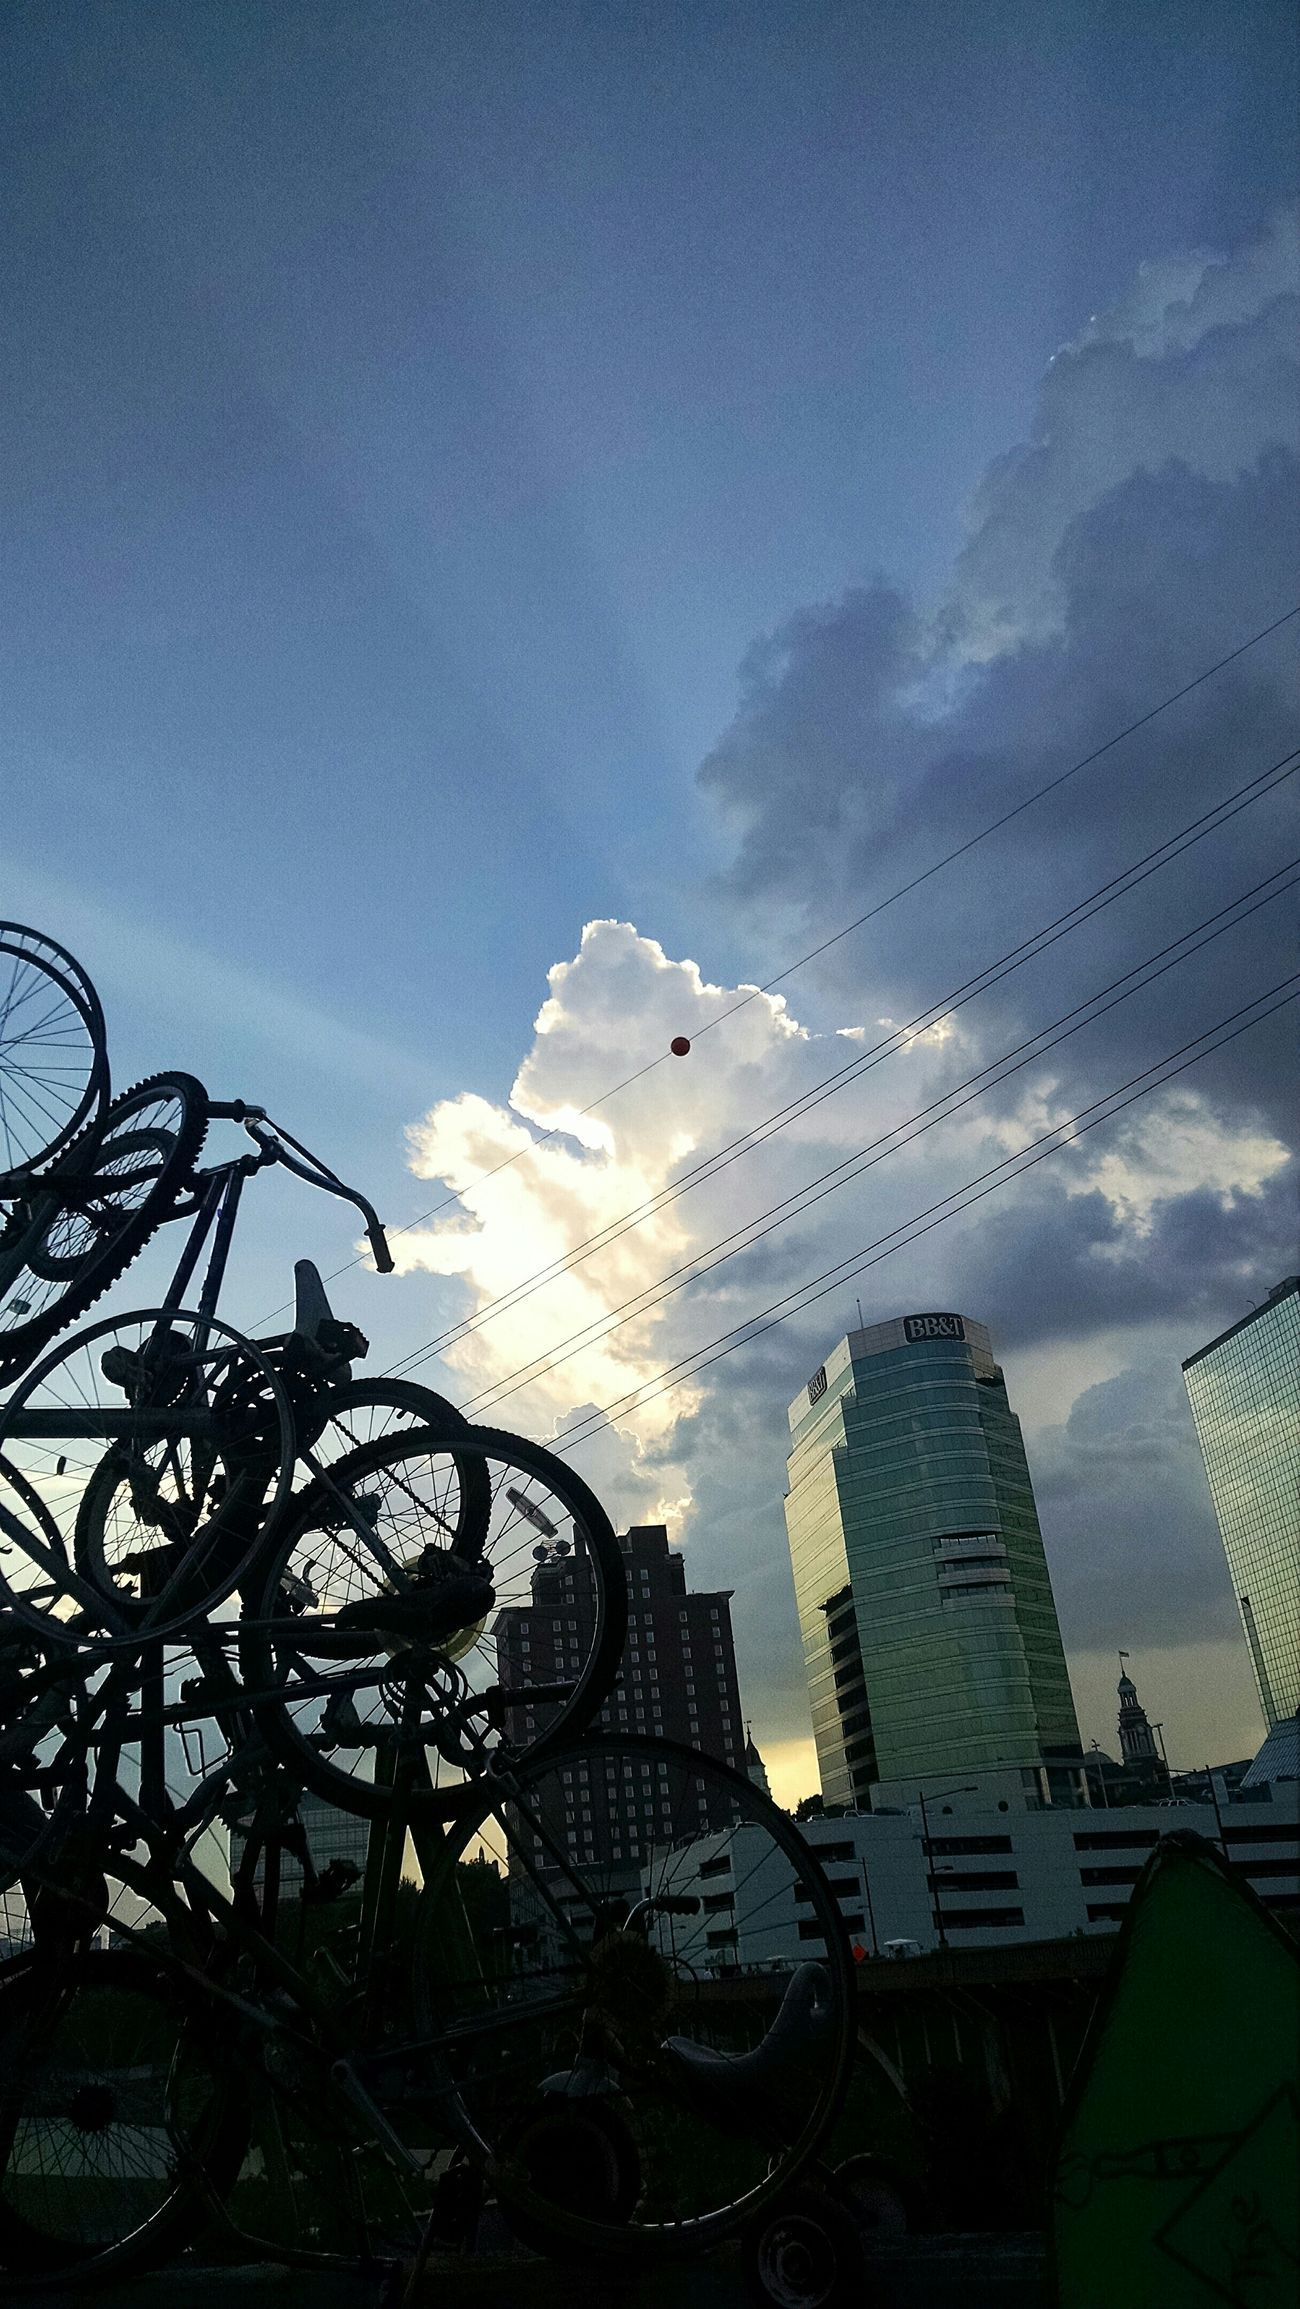 There is so much to see if we just look Reflection My Cloud Obsession☁️ Downtown Tennessee Boomsday Buildings Bikes Silhouette Capture The Moment I Love My City